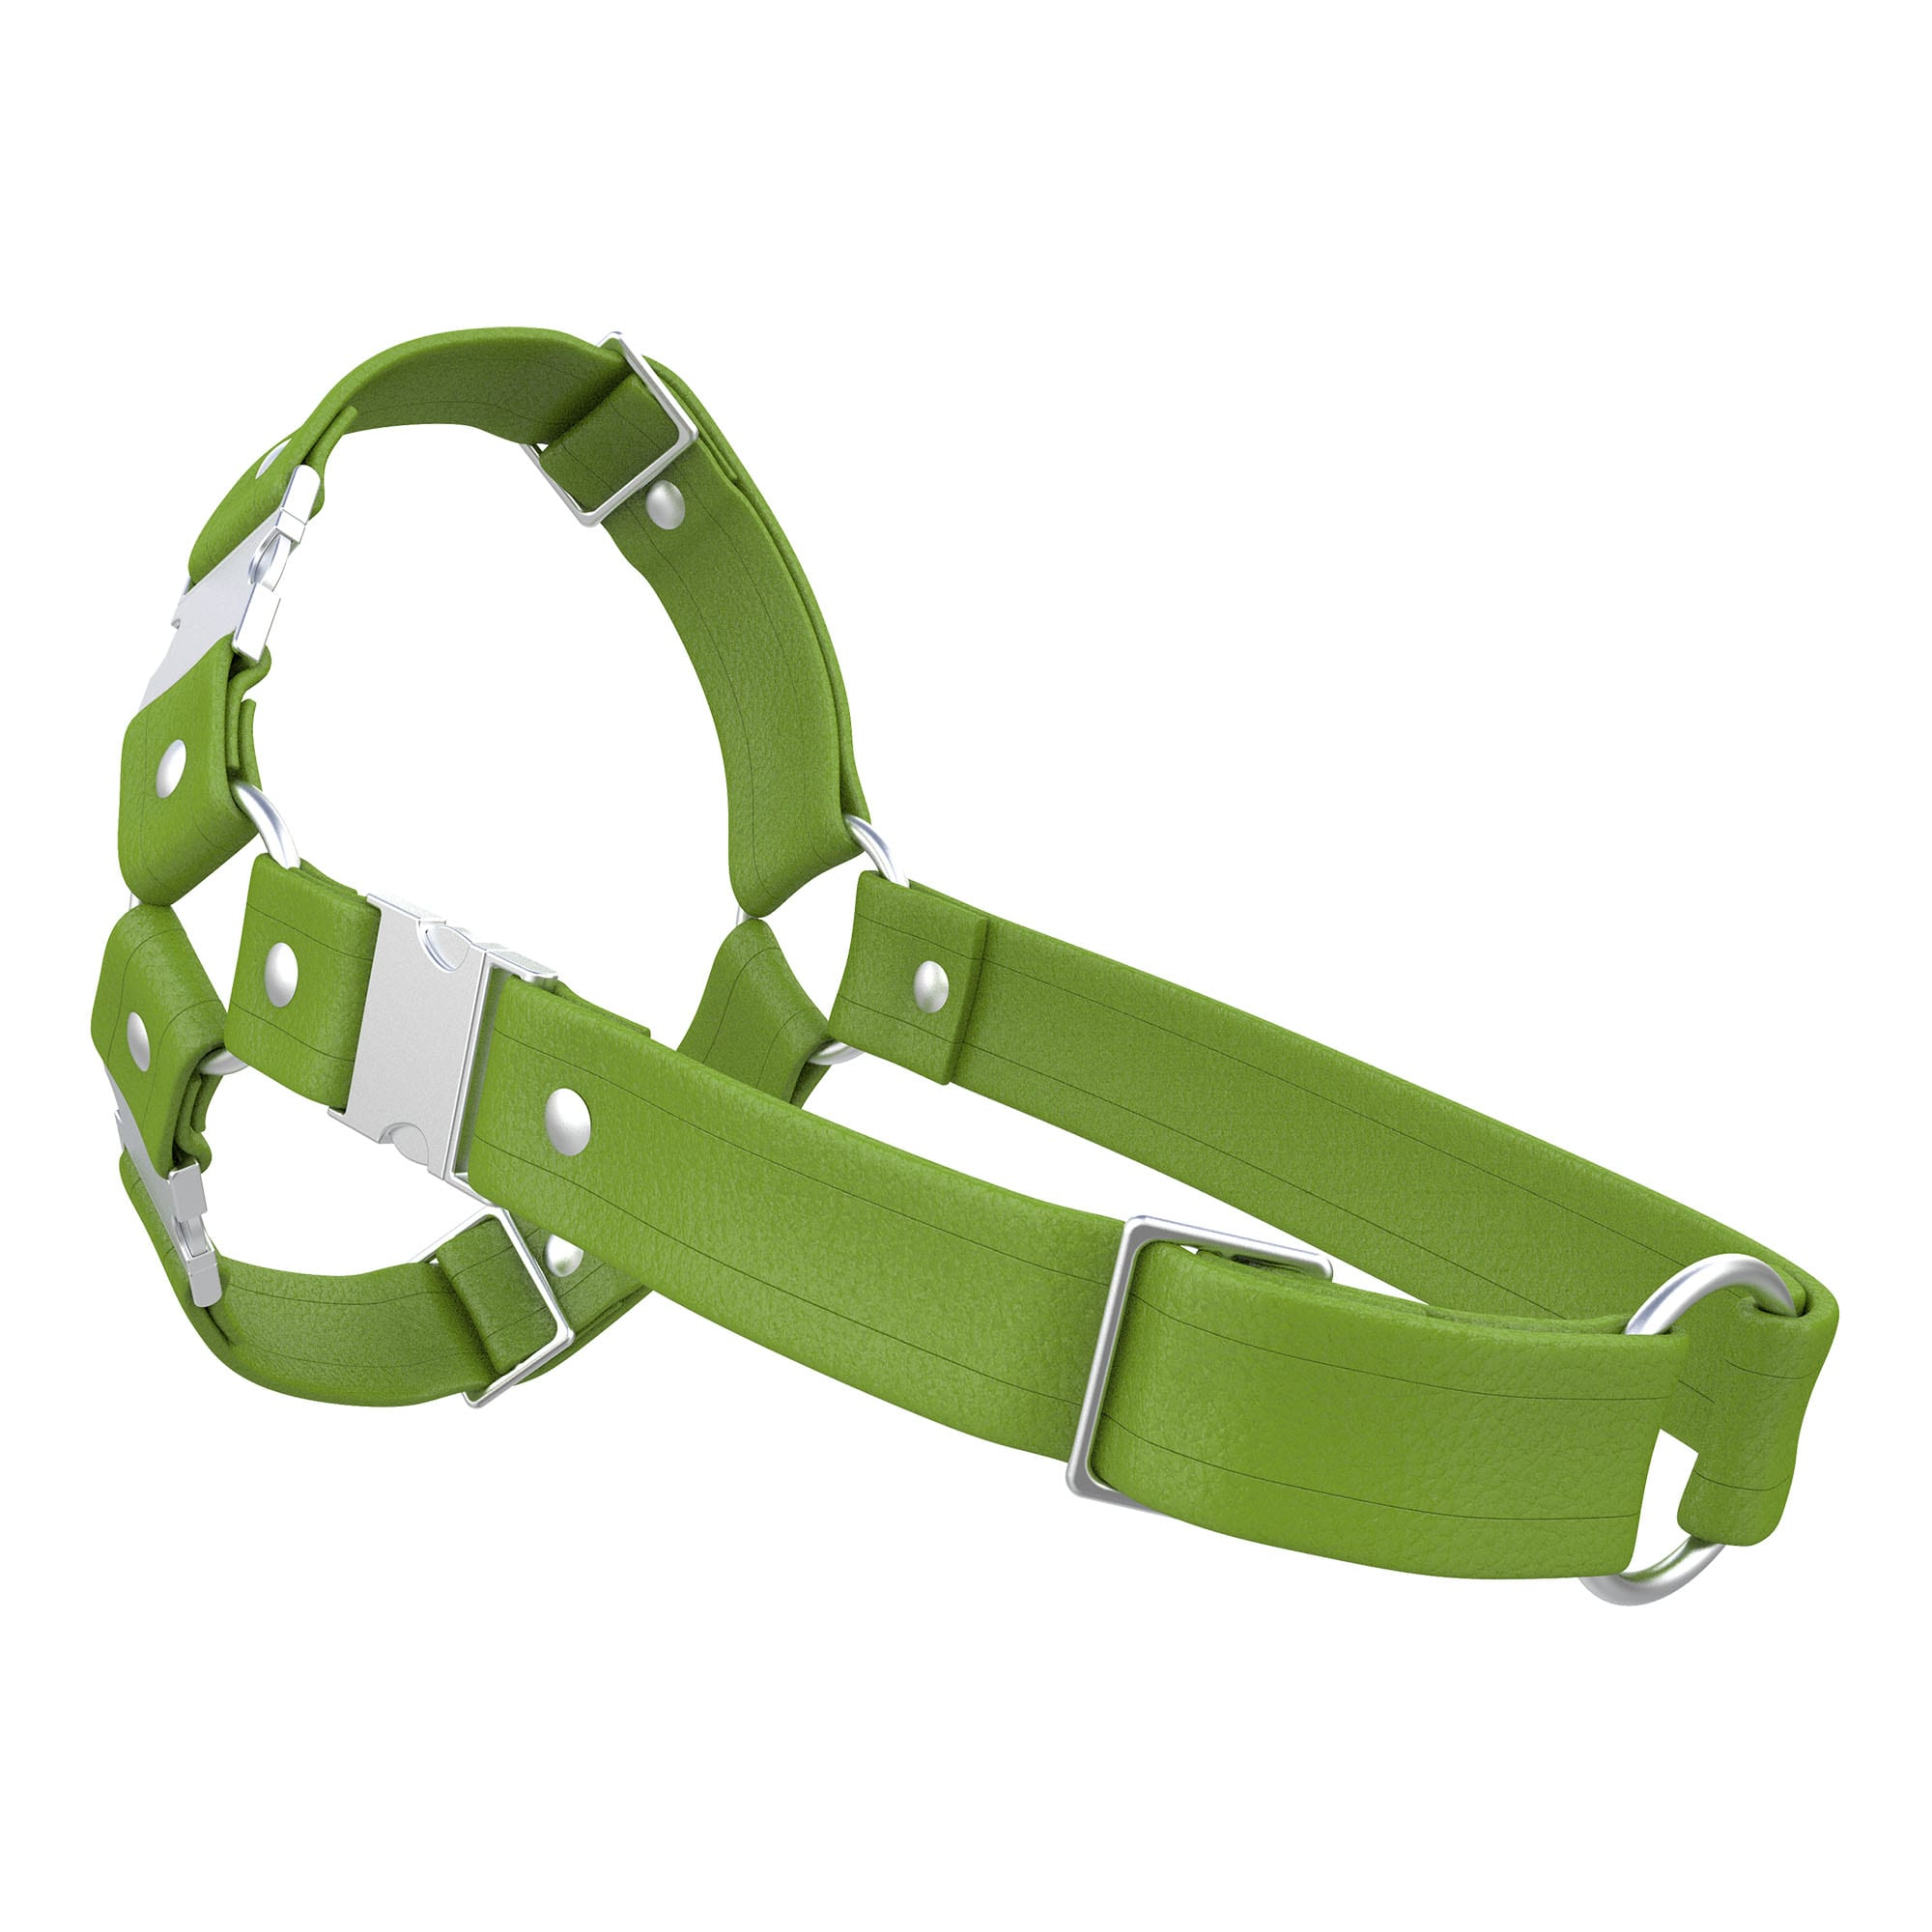 One Size Spartan Harness – Standard Leather – Green - Silver Metal Fittings